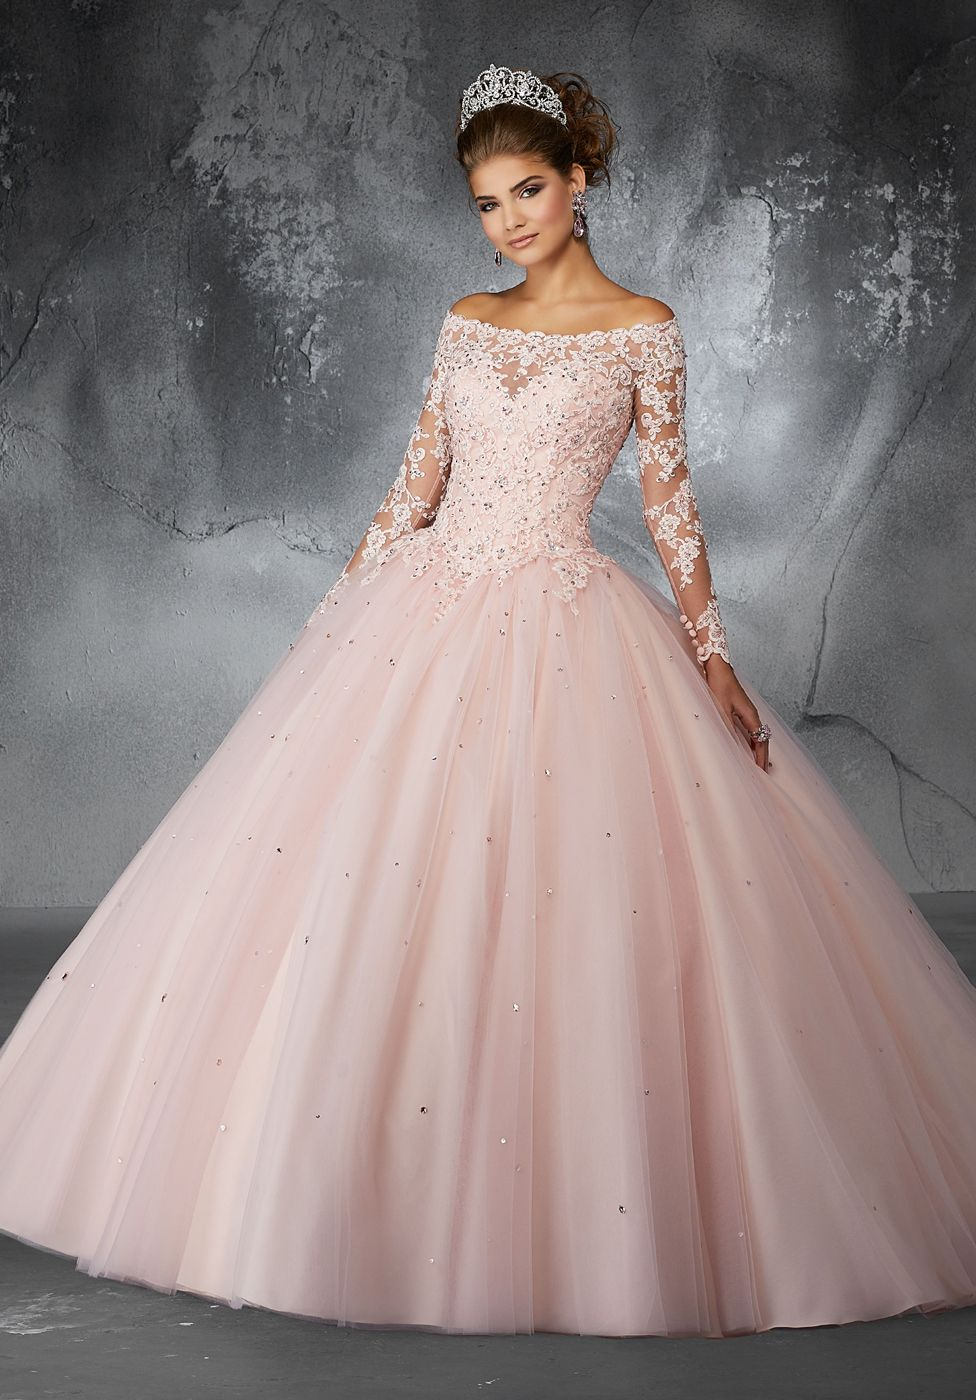 3a119303ac0 Buy Mori Lee 60052 Long Sleeve Quinceanera Dress today at MadameBridal.com  authorized retailer store. With every order get your free.